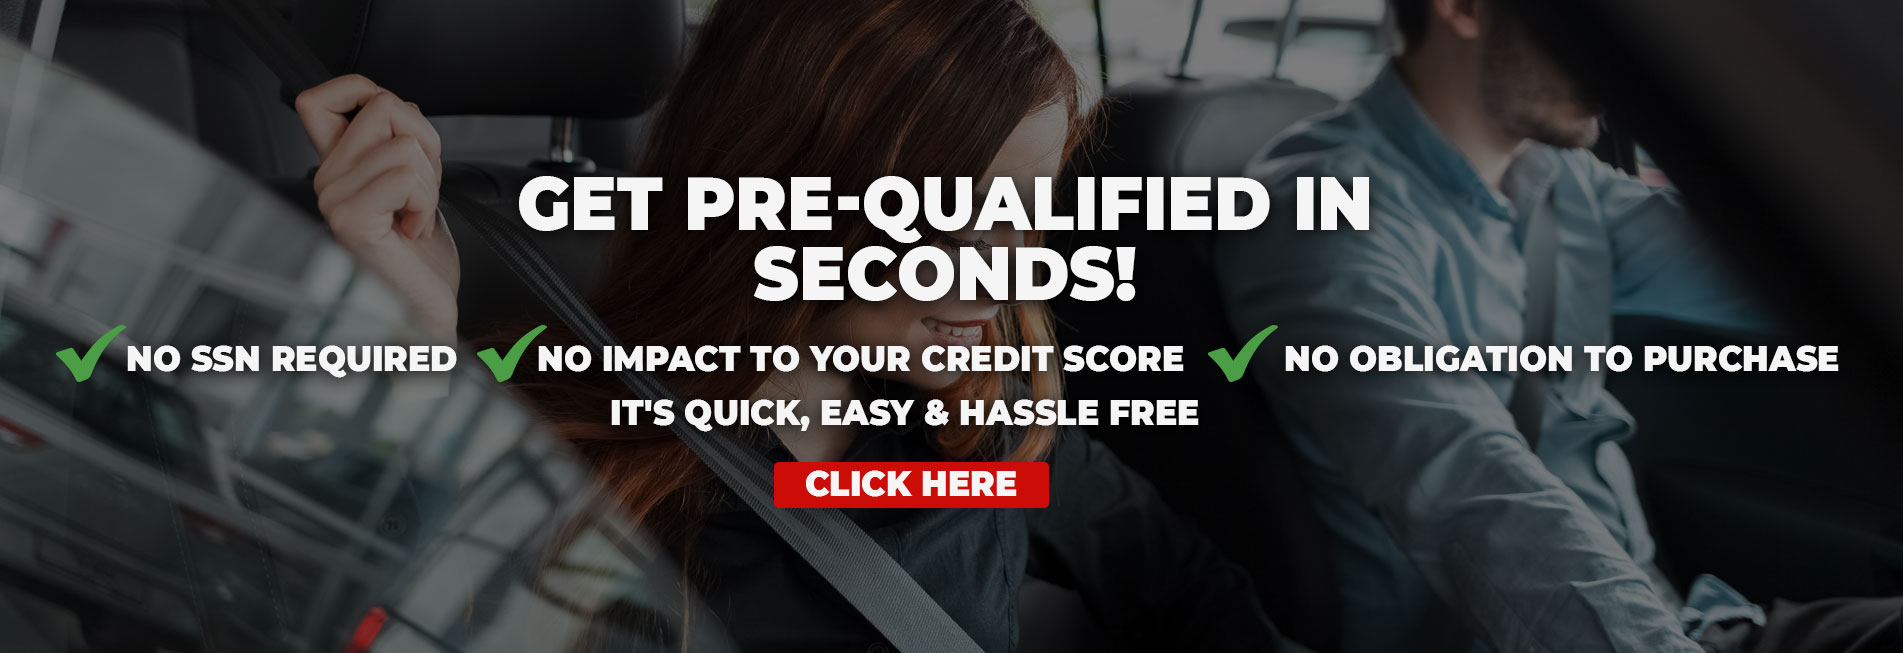 get pre-qualified in seconds!